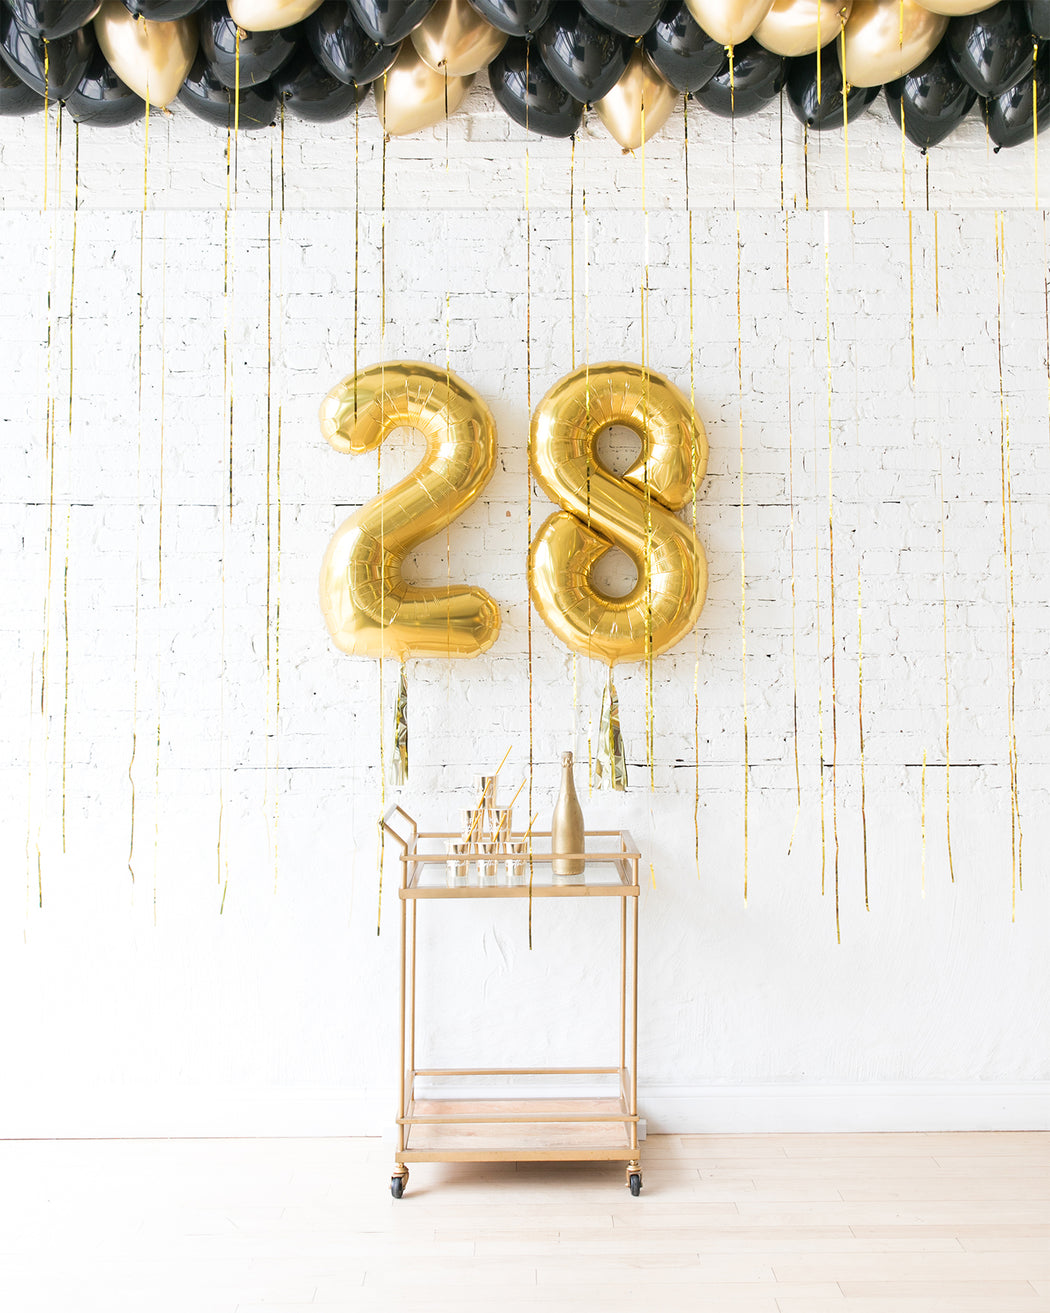 Couture - Number Foils & Ceiling Balloons Set